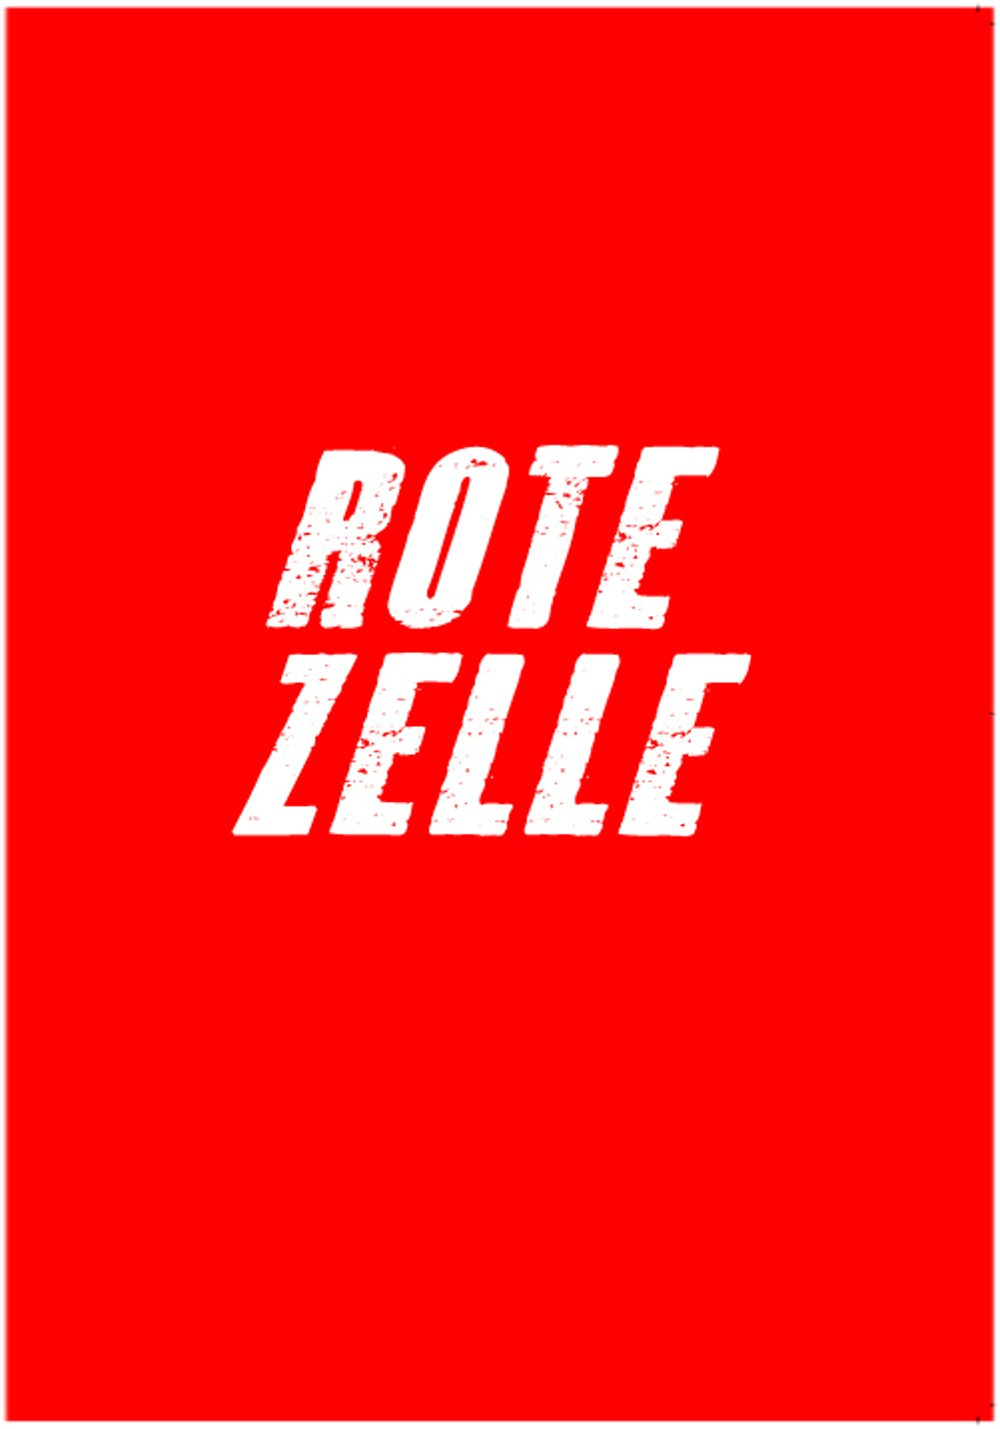 cover: ROTE ZELLE